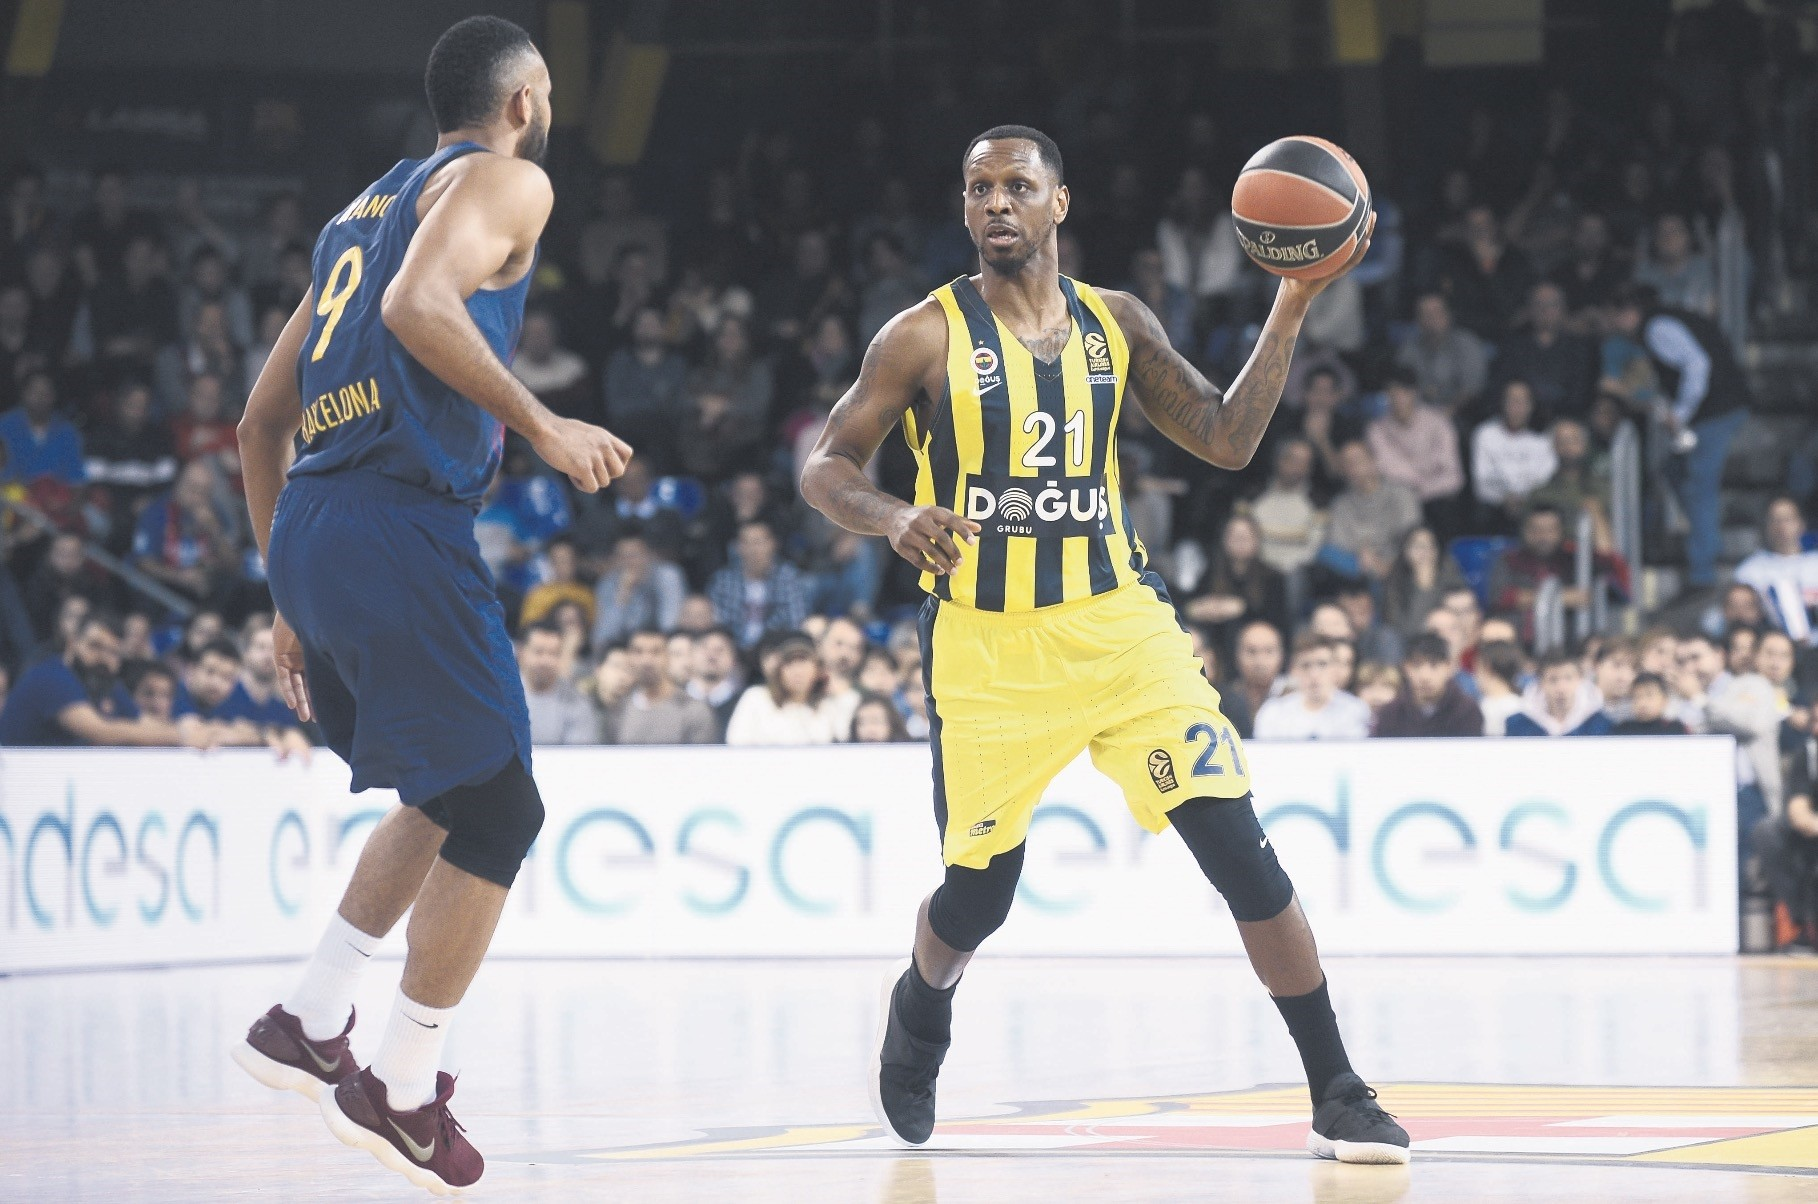 Fenerbahu00e7eu2019s James Nunnally leads the competition in three-point accuracy with a 60 percent conversion rate.